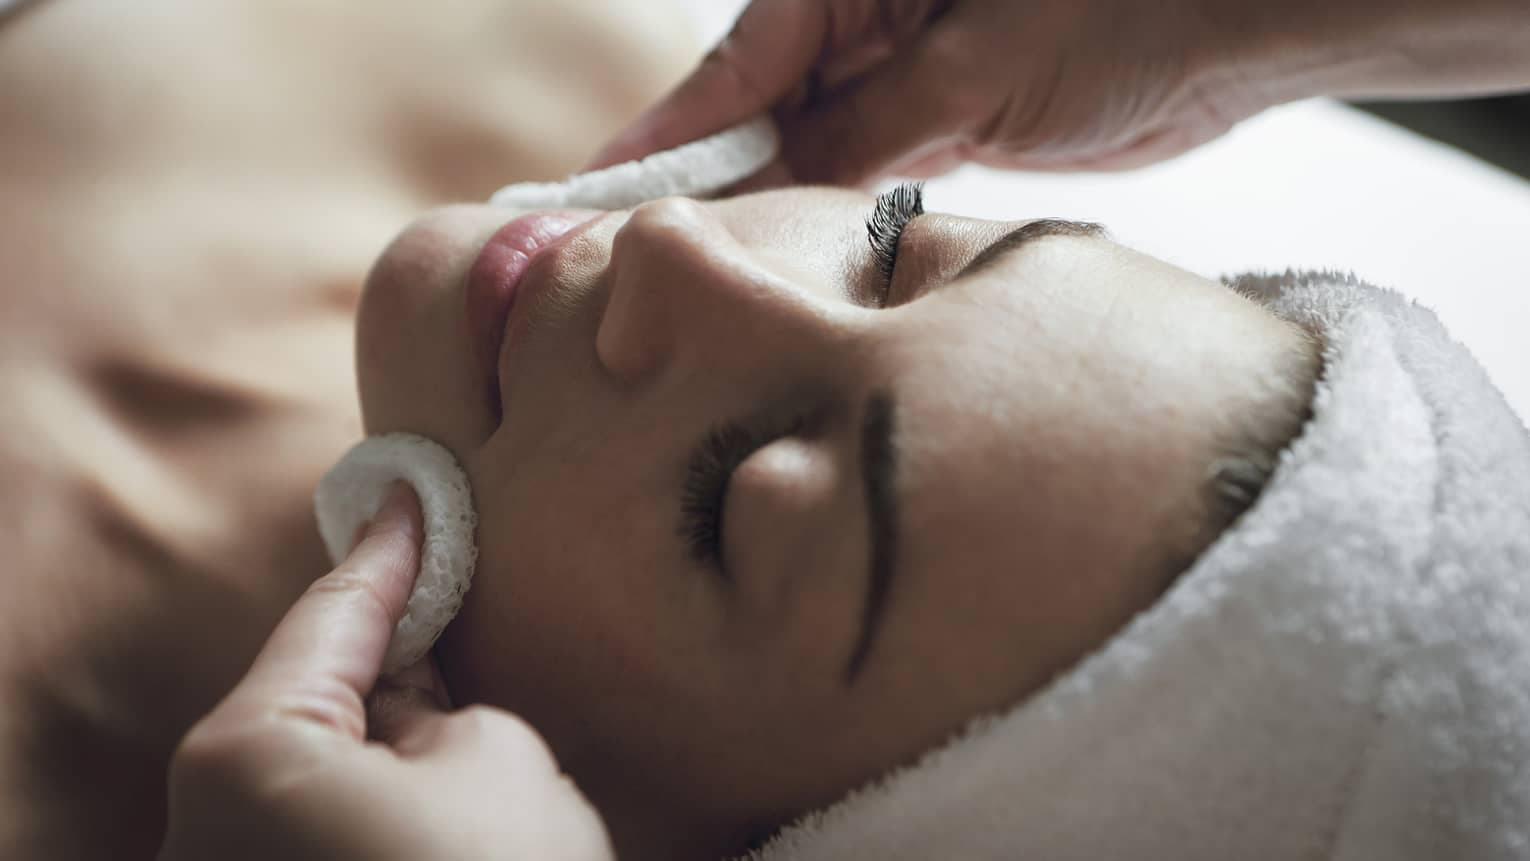 A detail of hands rubbing a sponge on a woman's face as she lies on a massage table with her eyes closed and hair wrapped up in a white towel